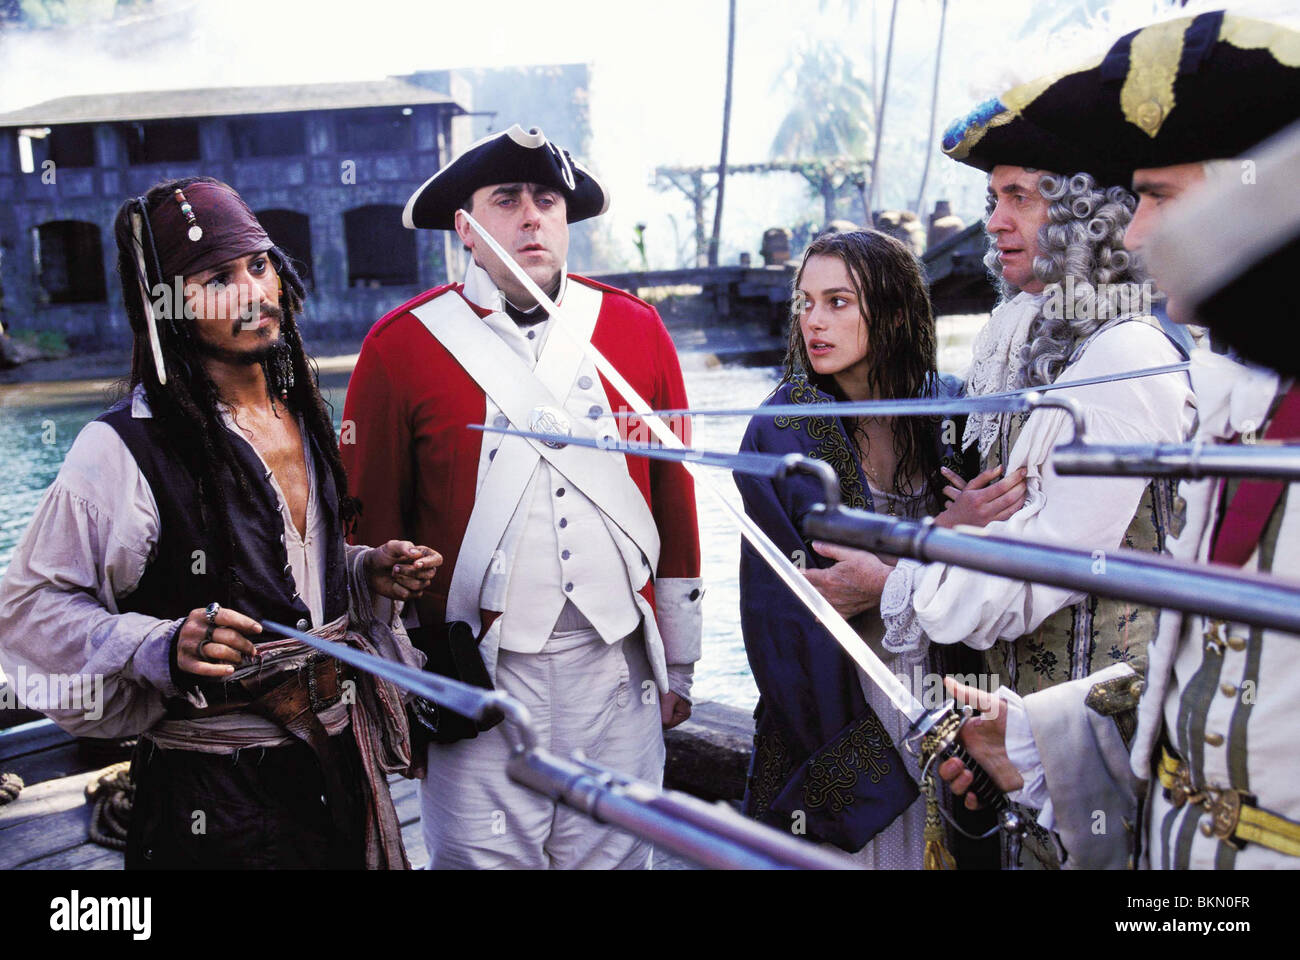 PIRATES OF THE CARIBBEAN: THE CURSE OF THE BLACK PEARL (2003) JOHNNY DEPP, KEIRA KNIGHTLEY, JONATHAN PRYCE, JACK - Stock Image